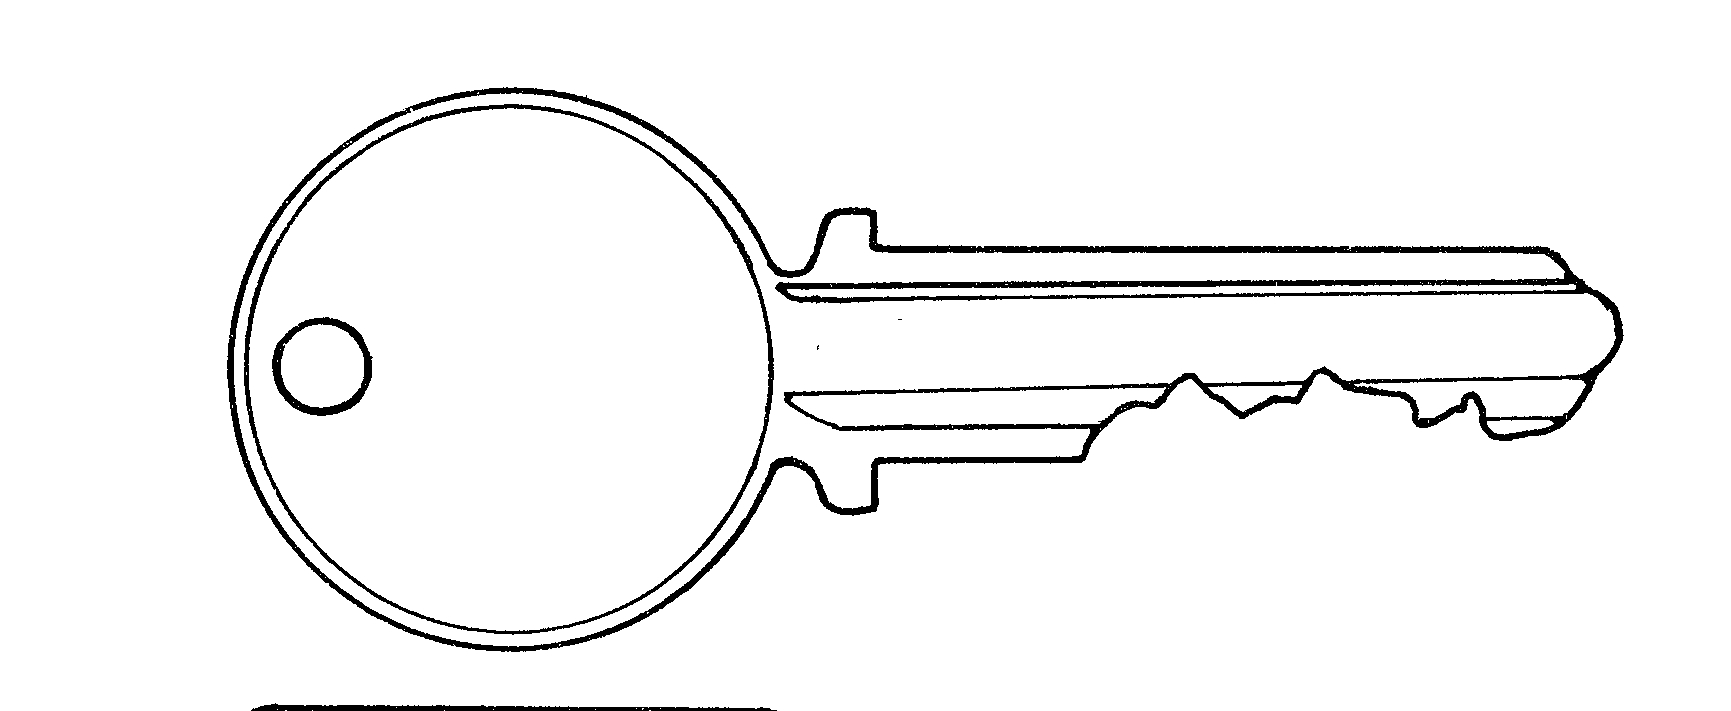 Key clipart outline clipart free download Key black and white key clipart black and white 2 – Gclipart.com clipart free download